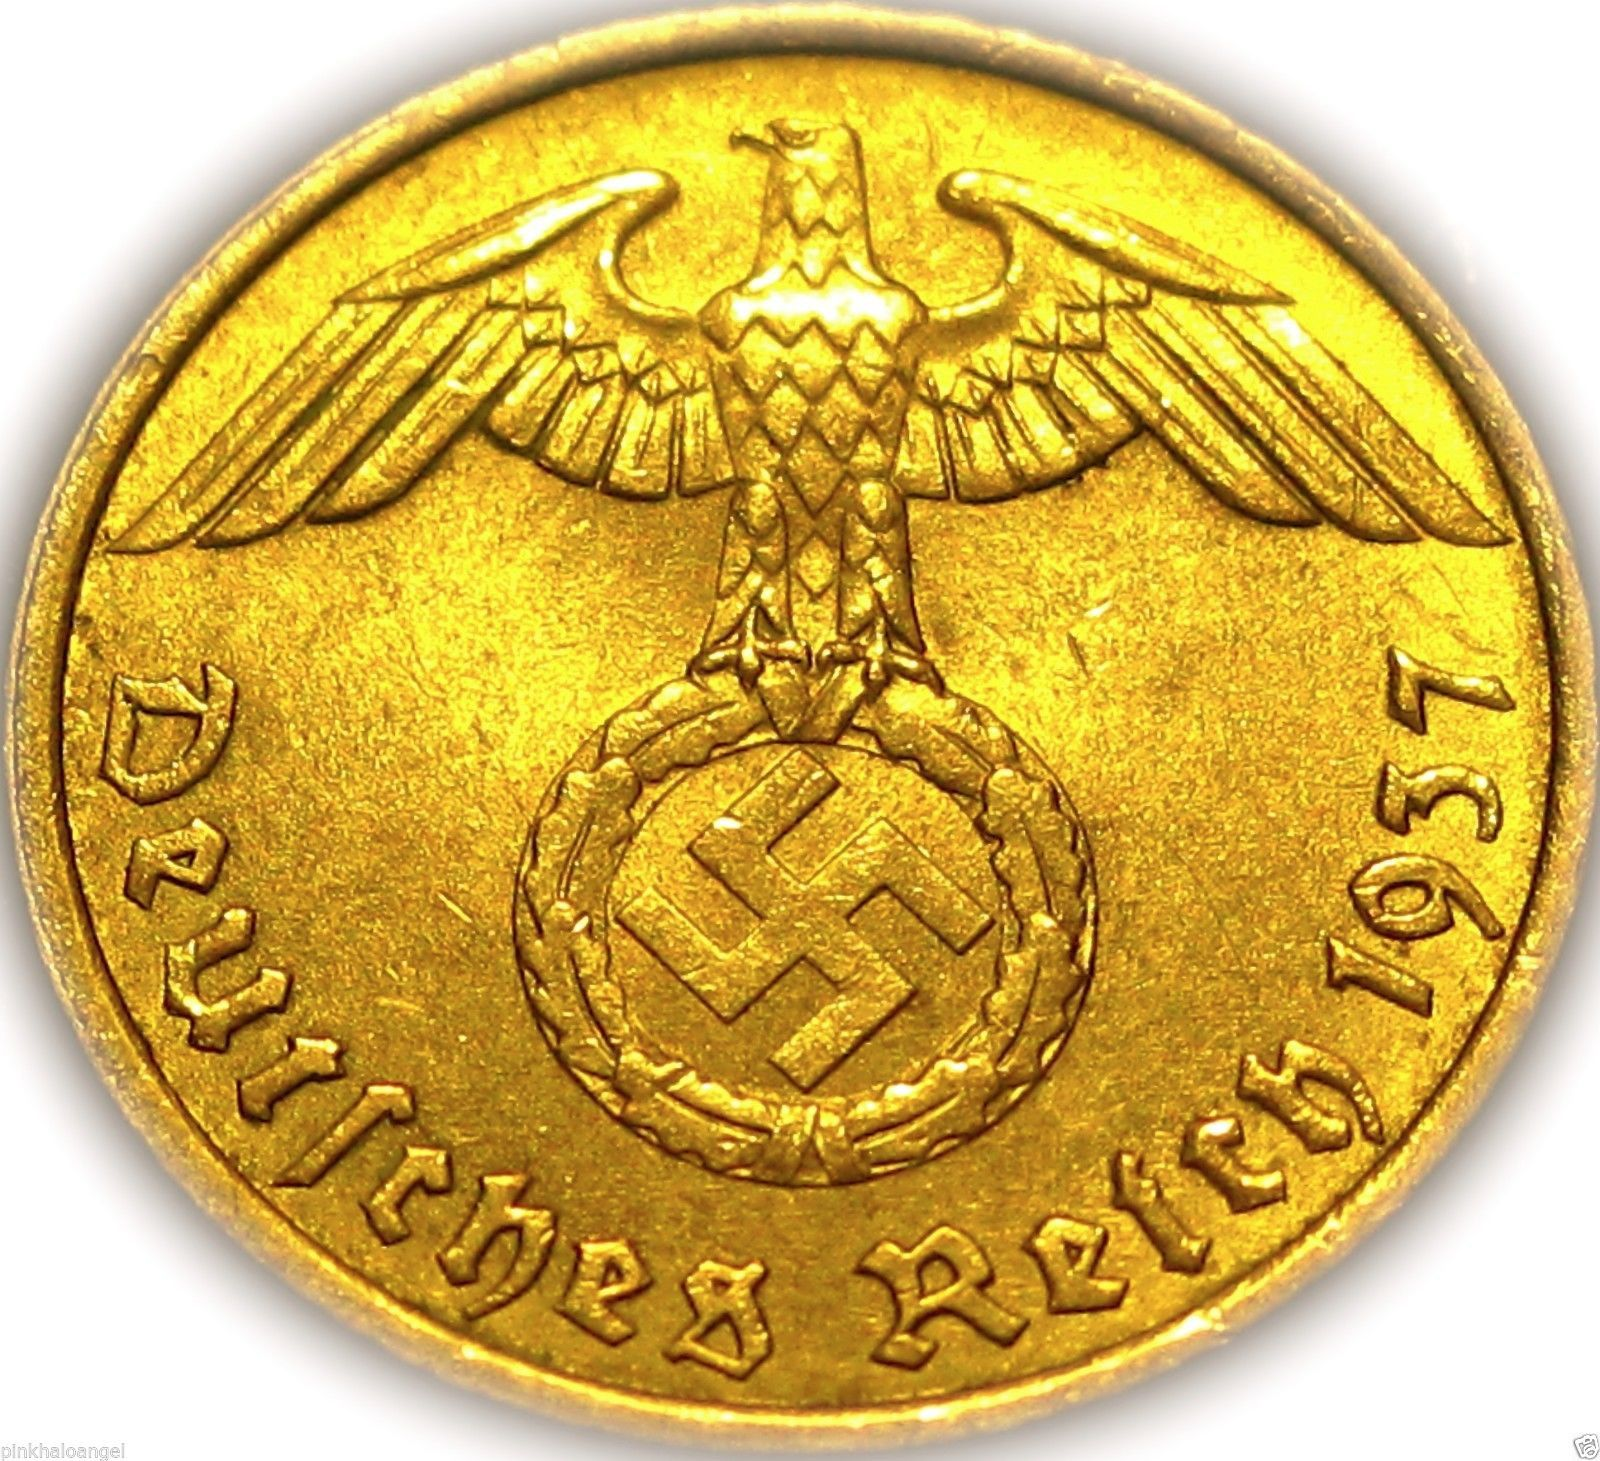 This coin was minted during the German Third Reich Era which included World War 2. Great piece to add to your collection. Very popular and very rare - Beautiful Gold Design and Shine - Authenticated b